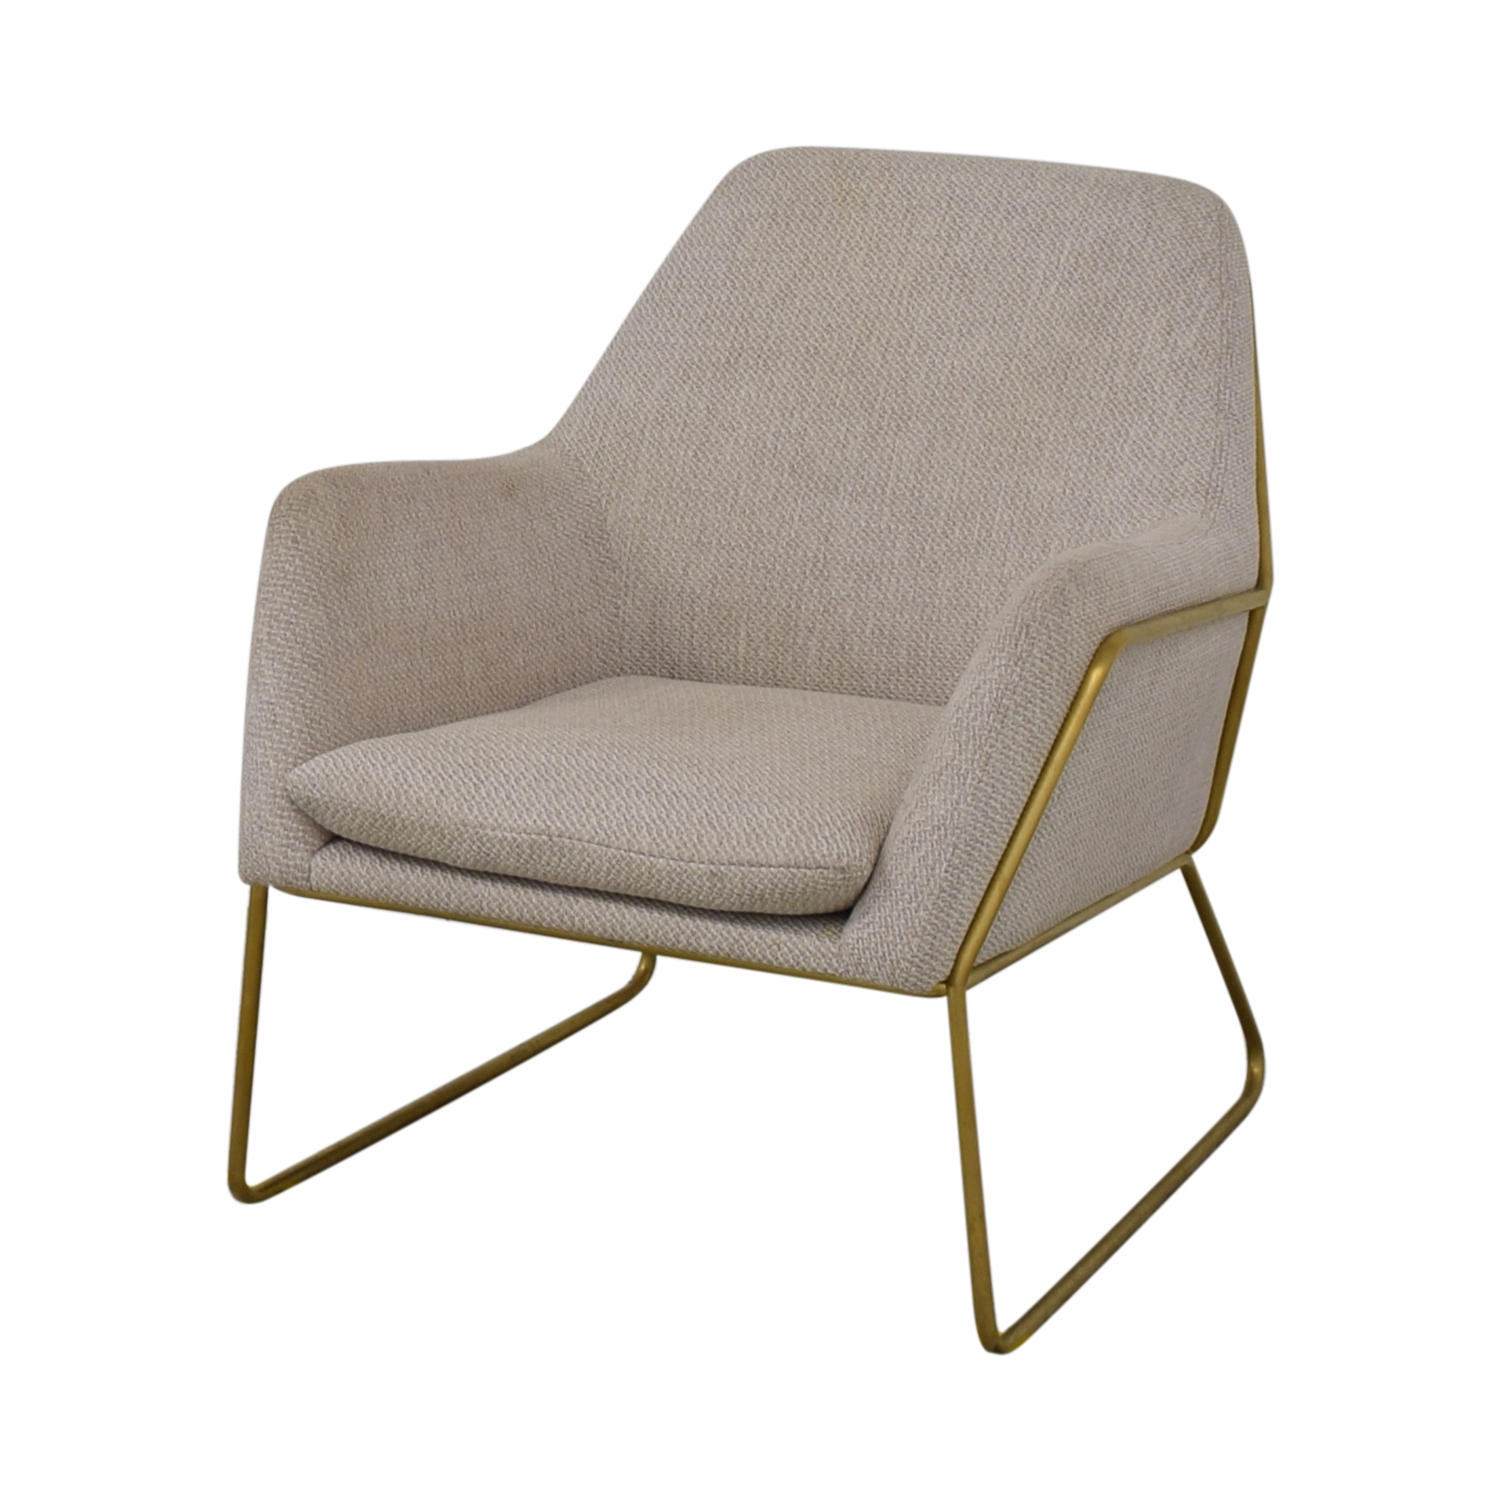 Article Article Forma Chair coupon